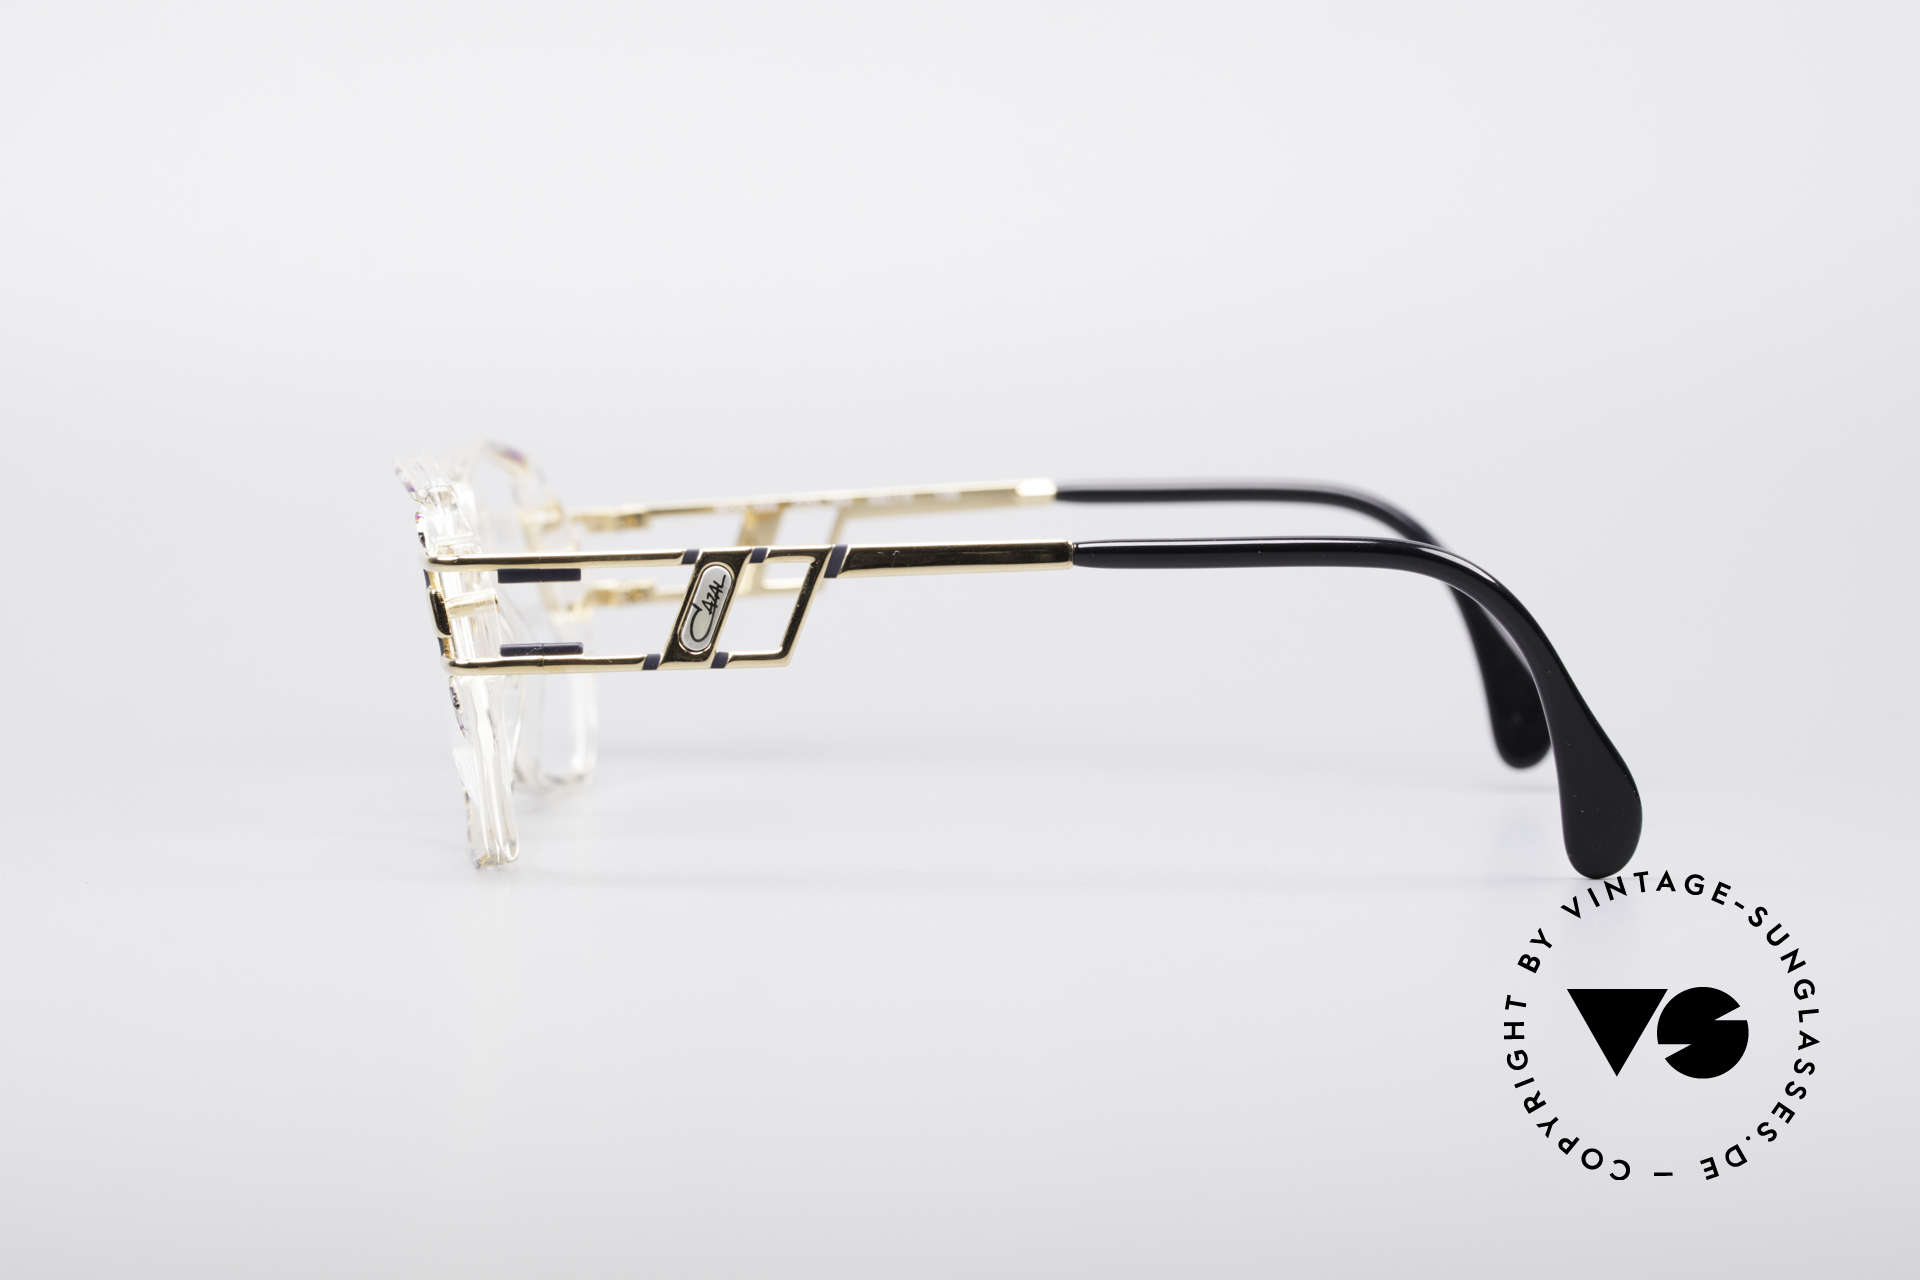 Cazal 359 90's Hip Hop Eyeglasses, a fancy eye-catcher and a popular HIP-HOP accessory, Made for Women